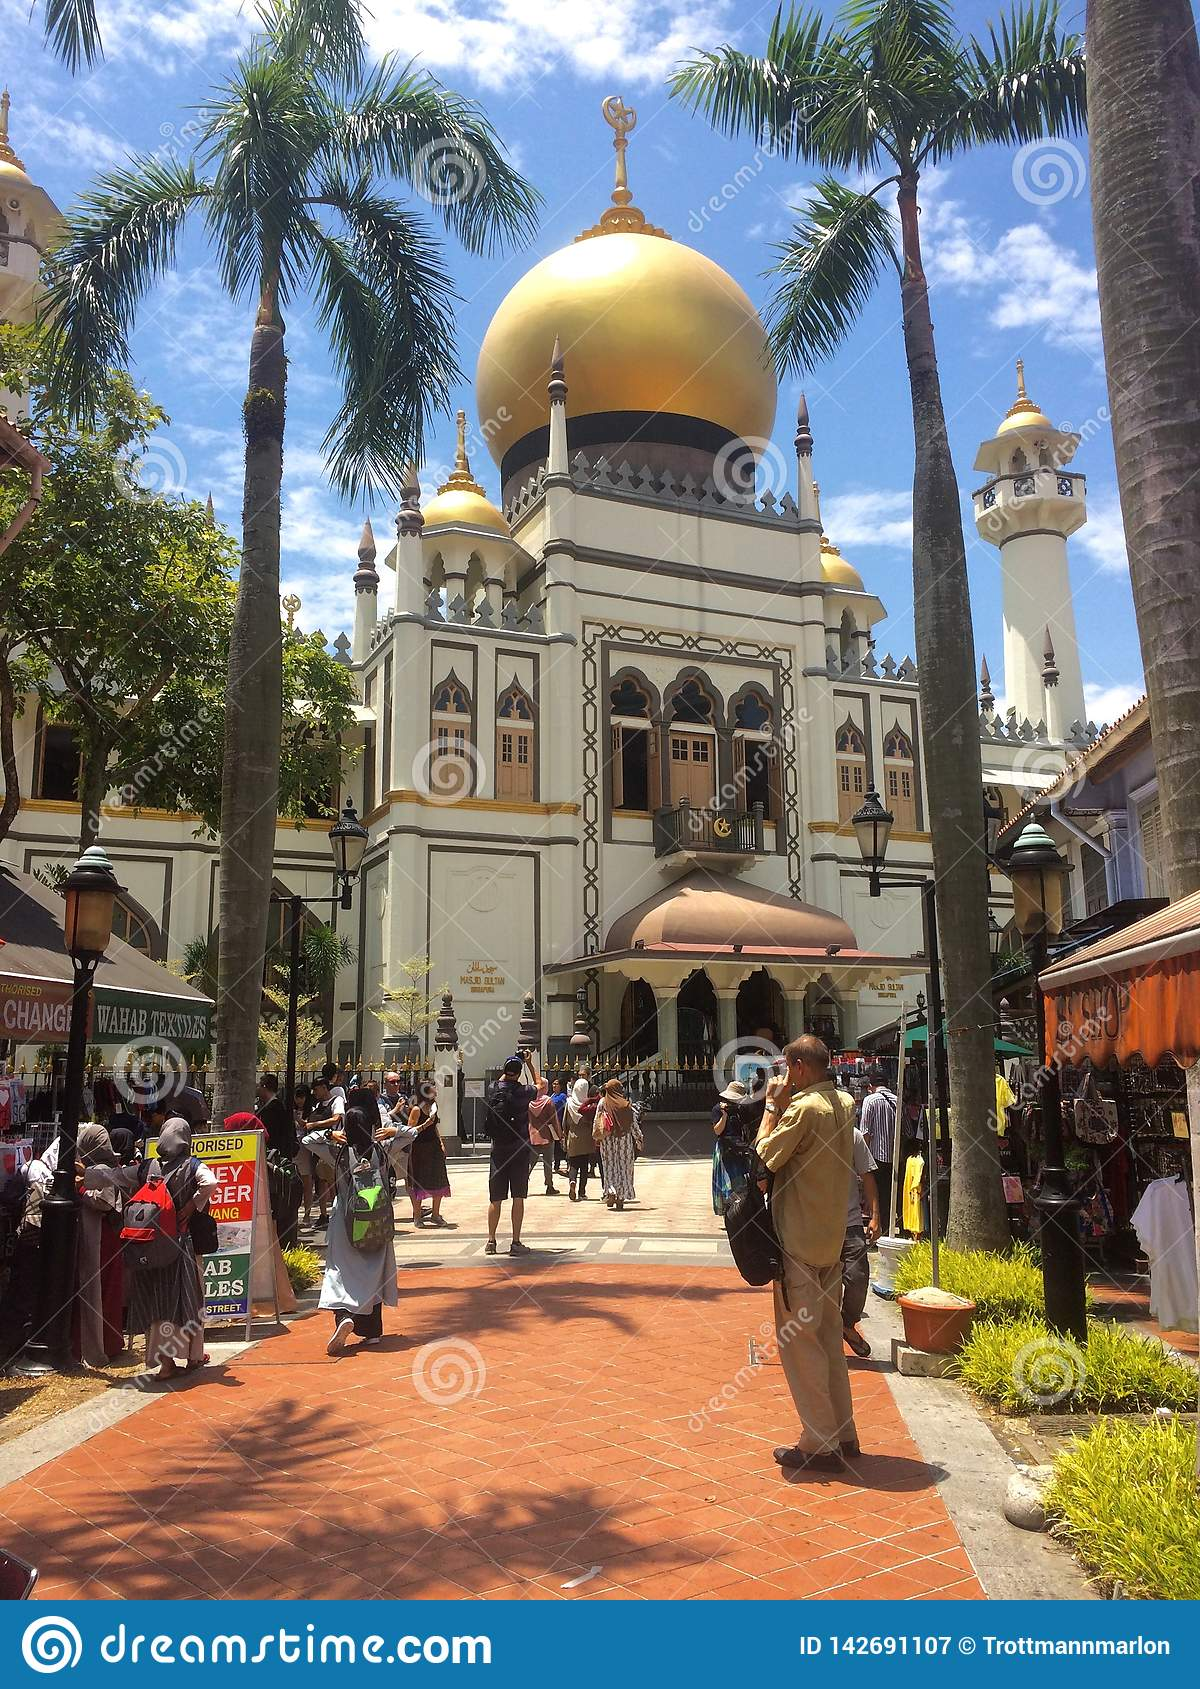 View of the beautiful Mashjid Sultan Mosque of Singapore